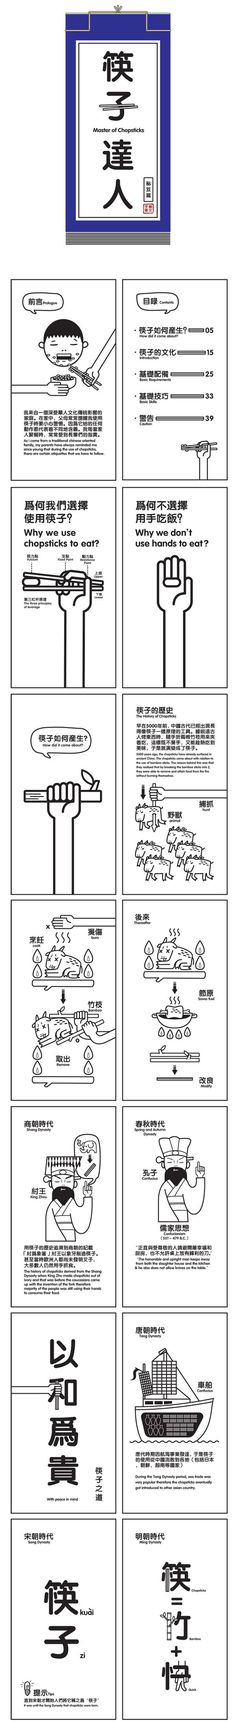 the history of chopsticks. Maybe it's a true history? (Bilingual)